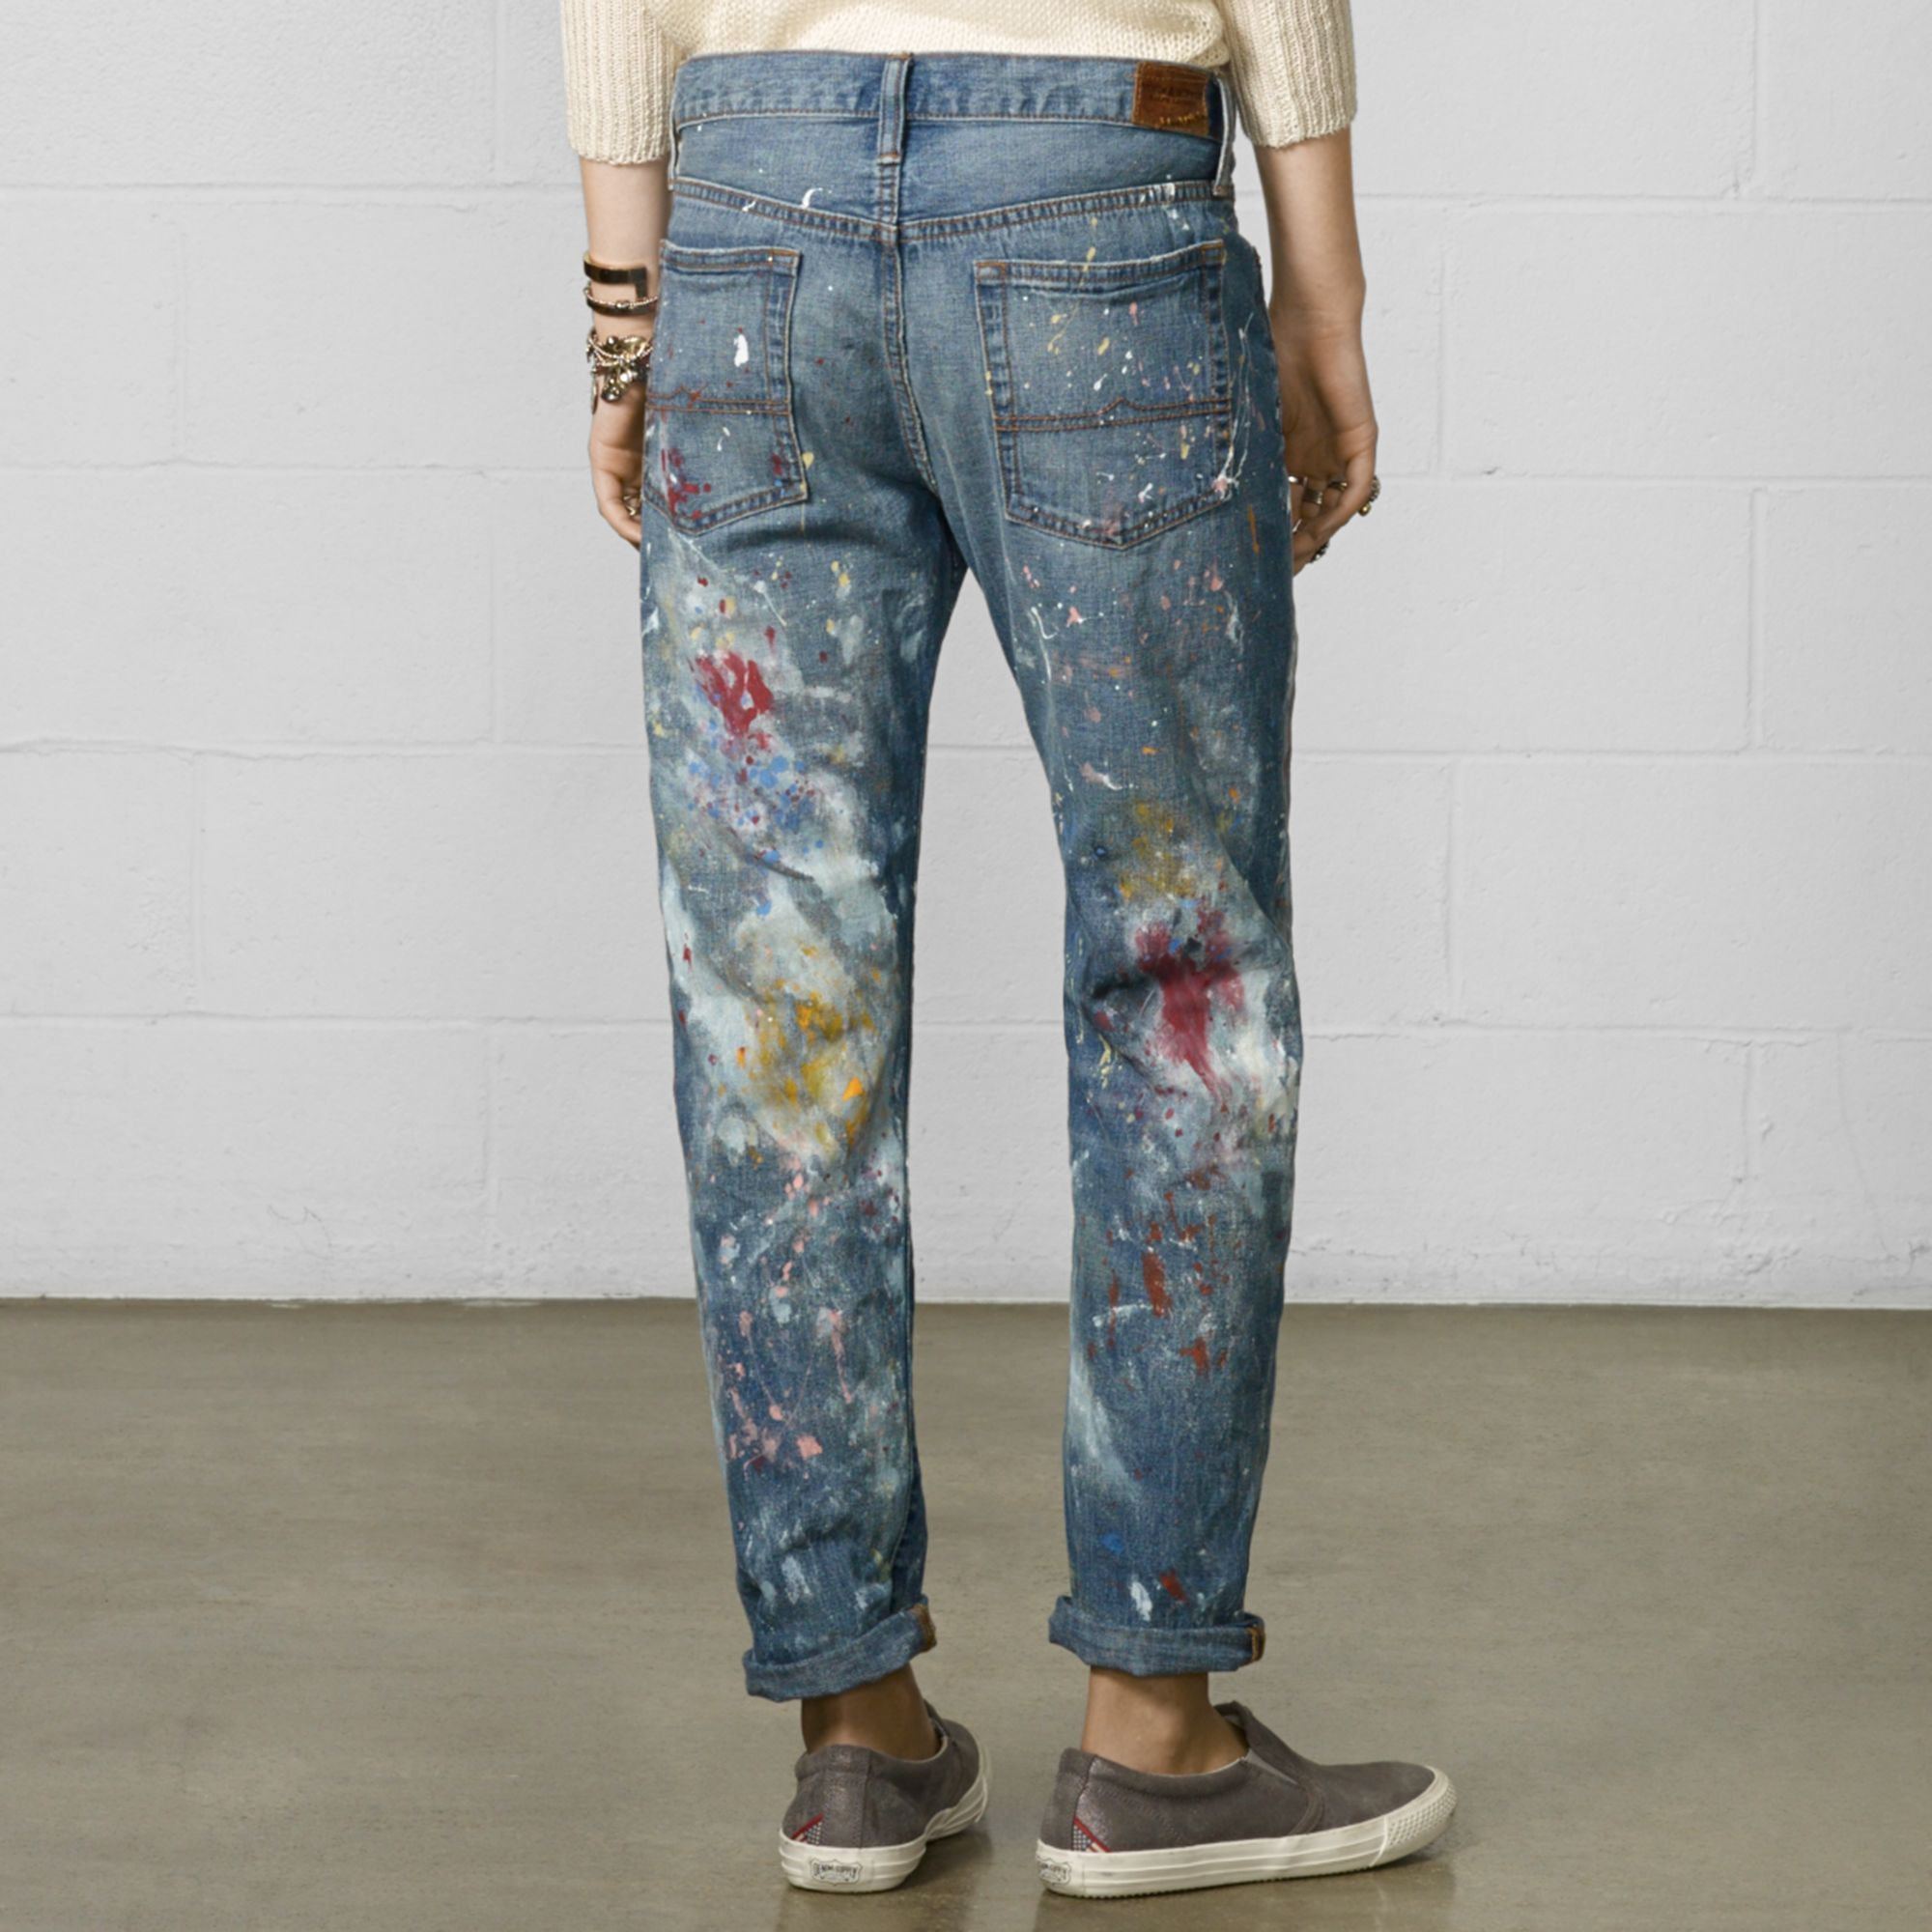 Image result for ralph lauren denim and supply paint jeans